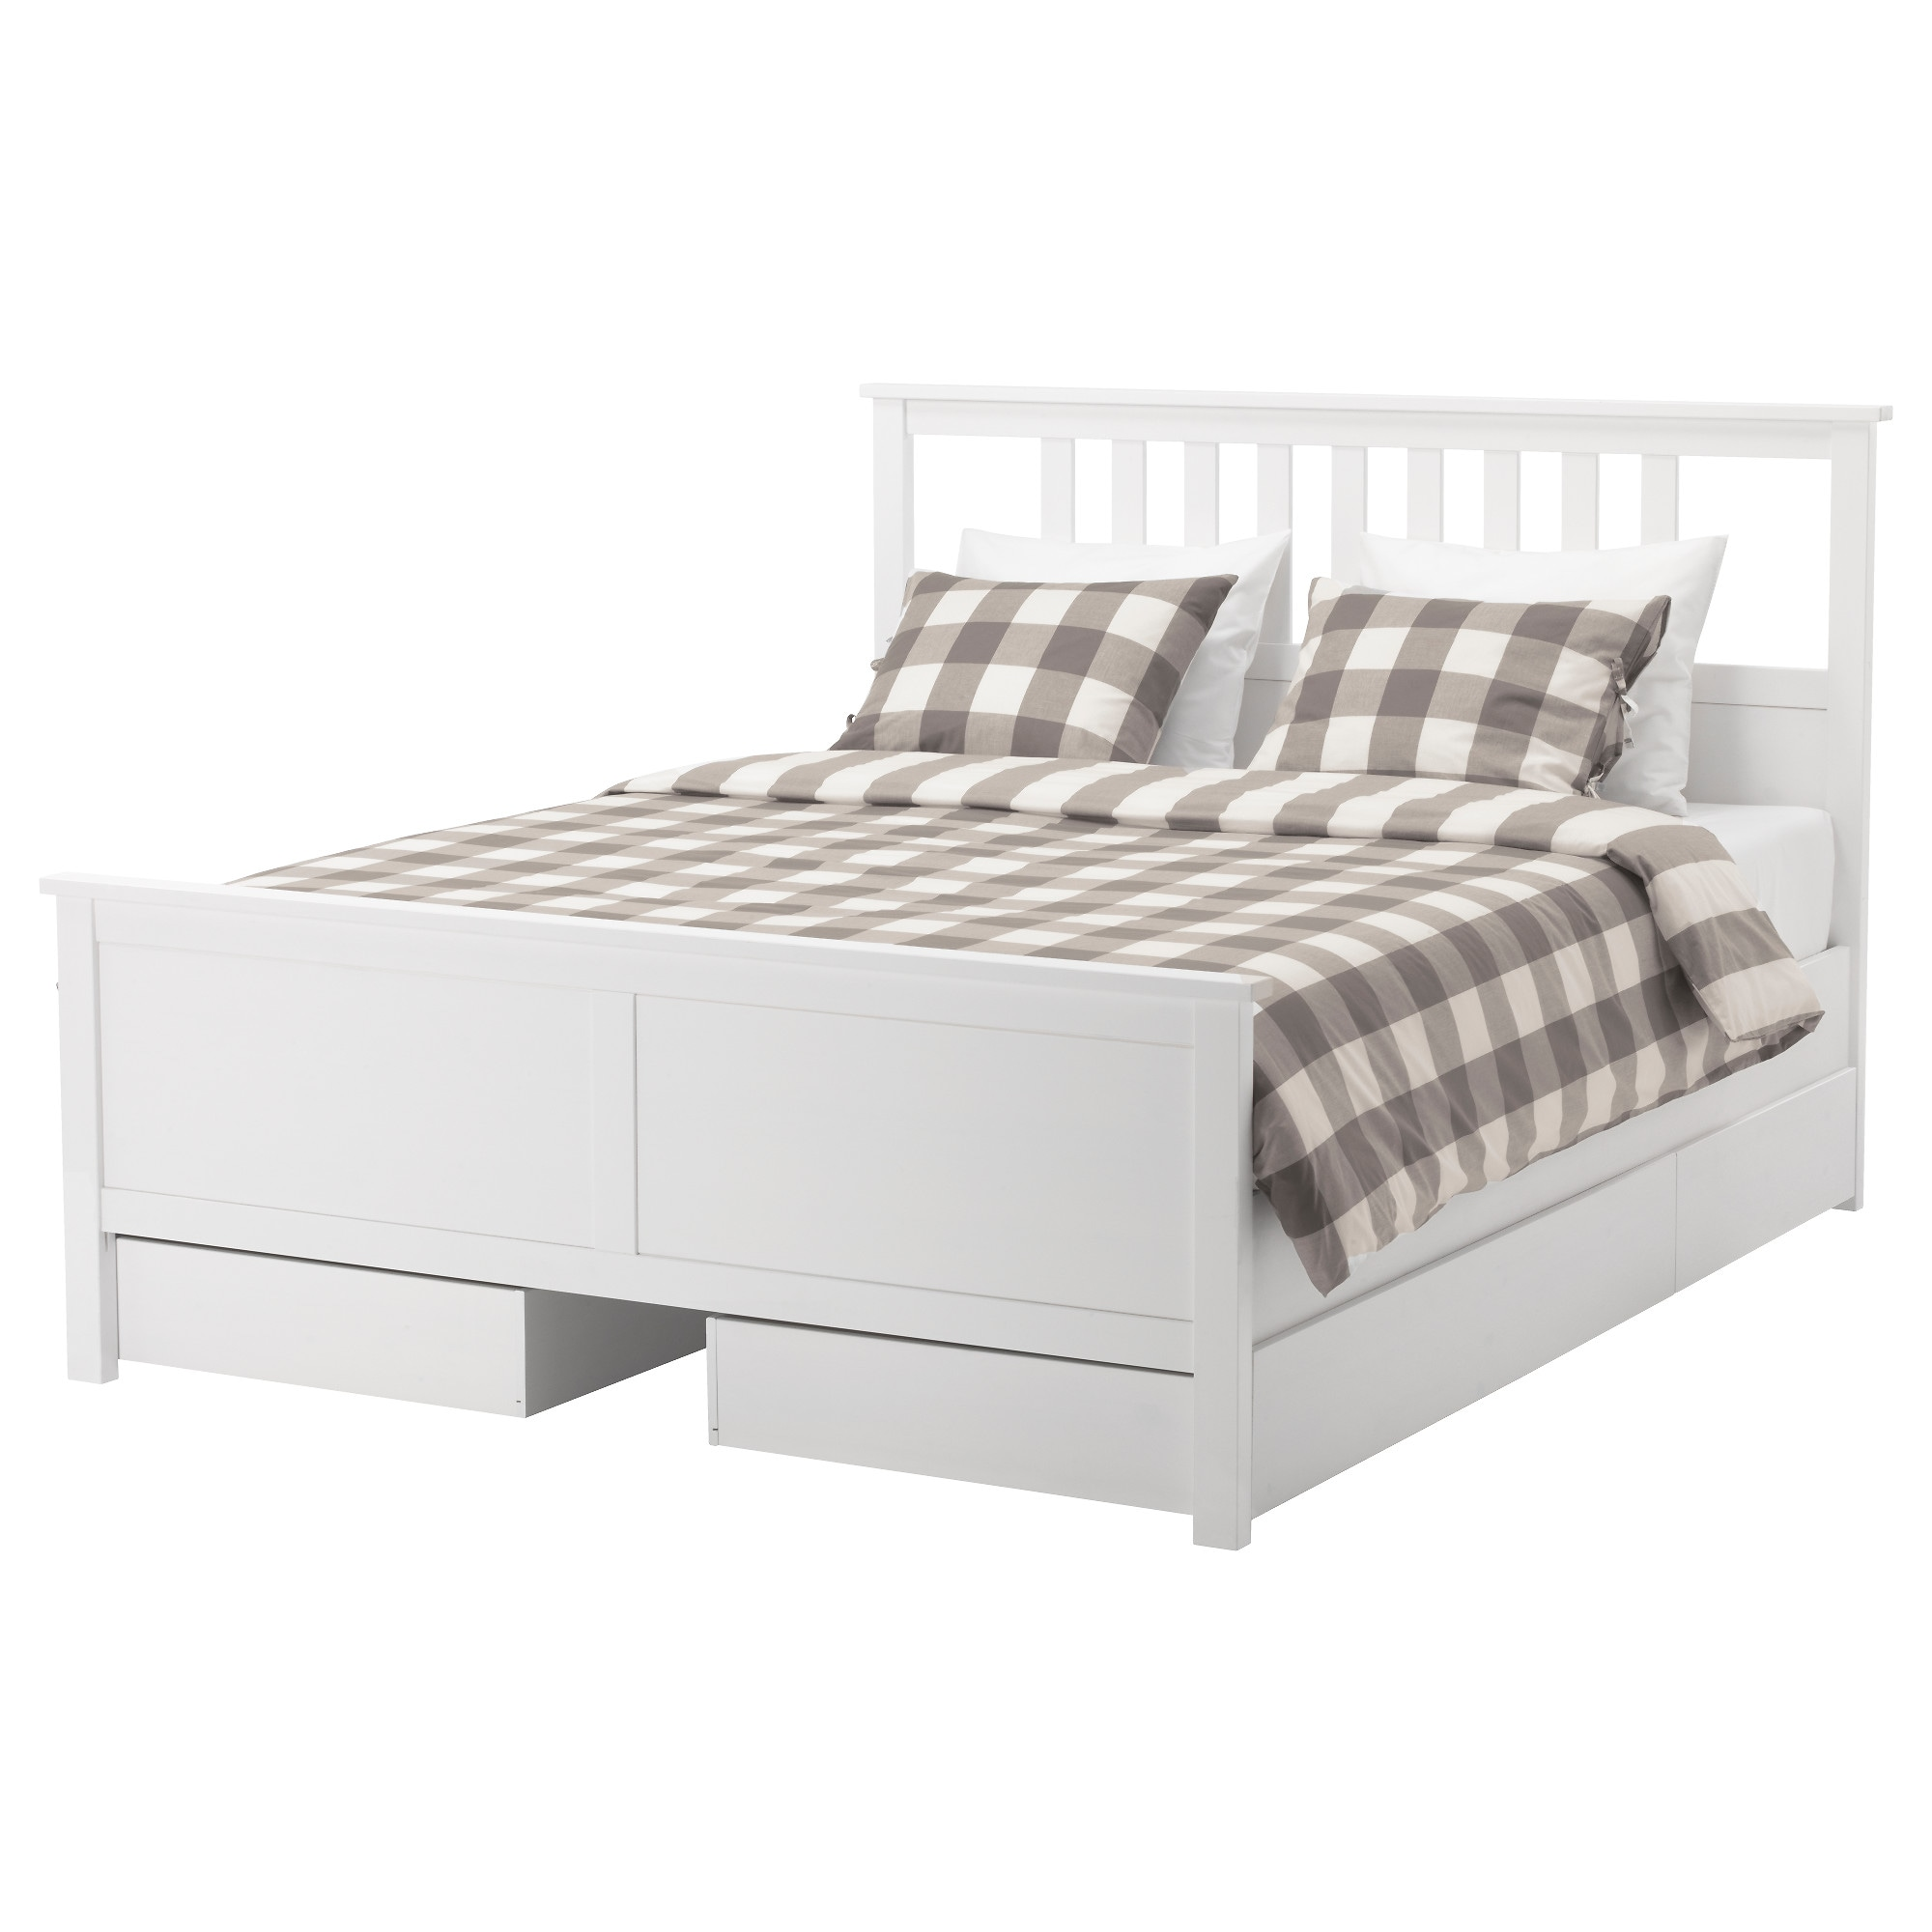 Full Queen King Beds Frames IKEA